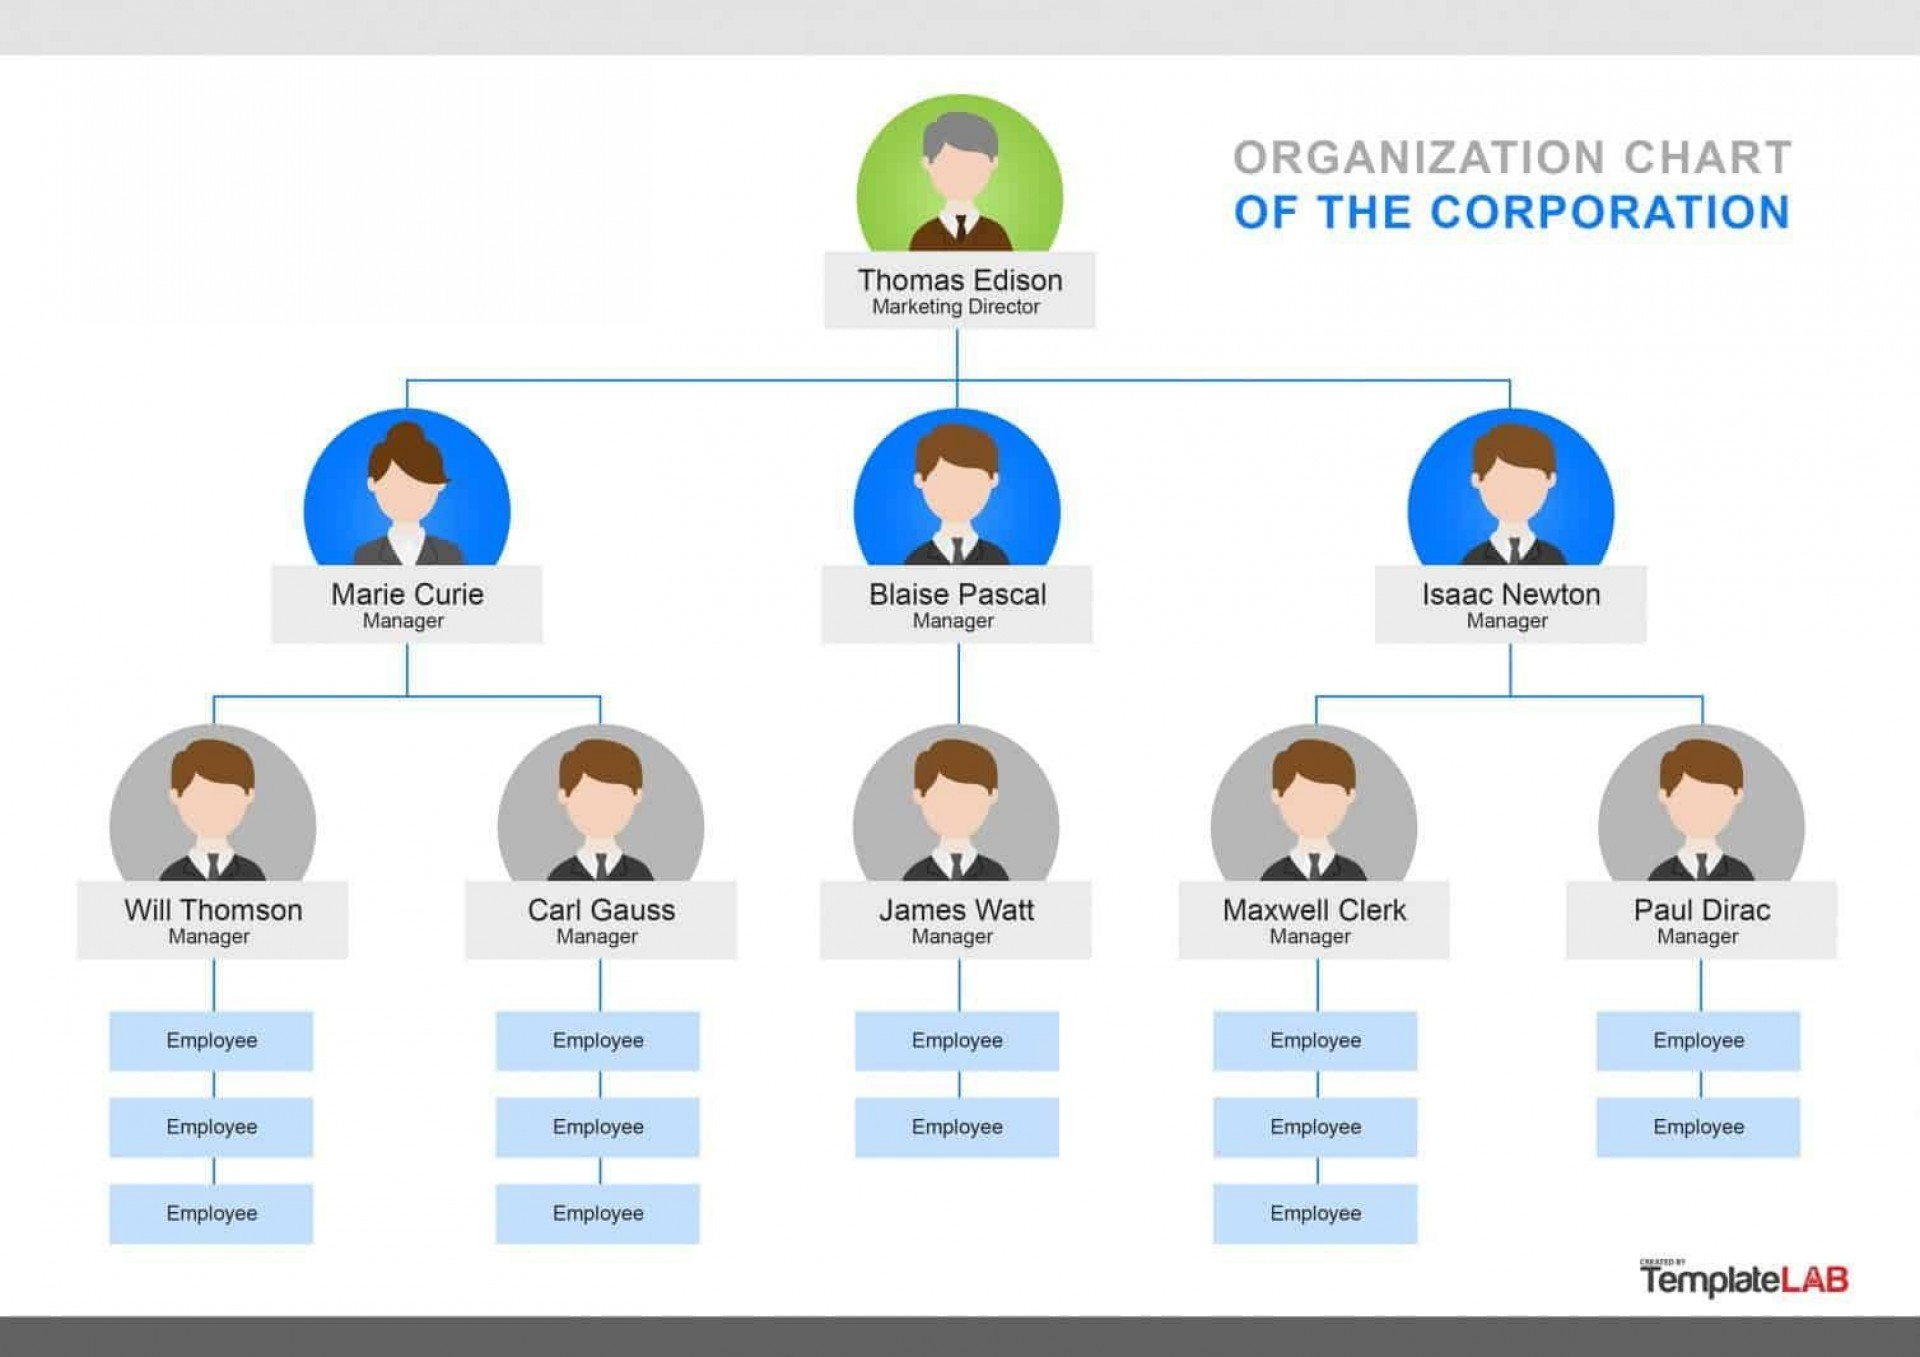 000 Unusual Word Organizational Chart Template Highest Quality  Org Free Microsoft Download Office1920